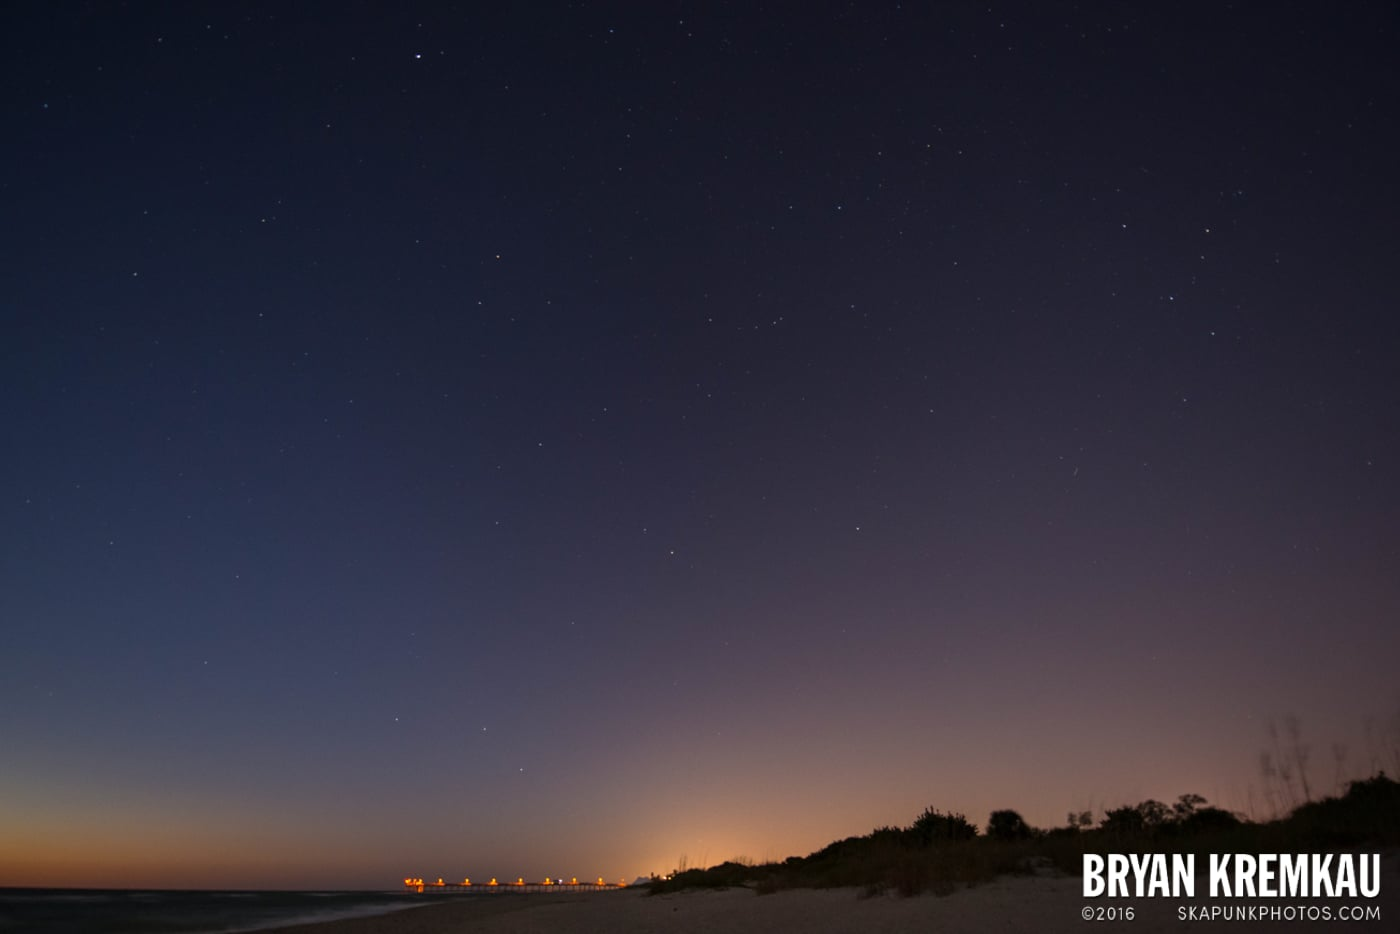 Sunsets, Astrophotography & Birds @ Venice, Florida - 10.25.14 - 11.5.14 (84)